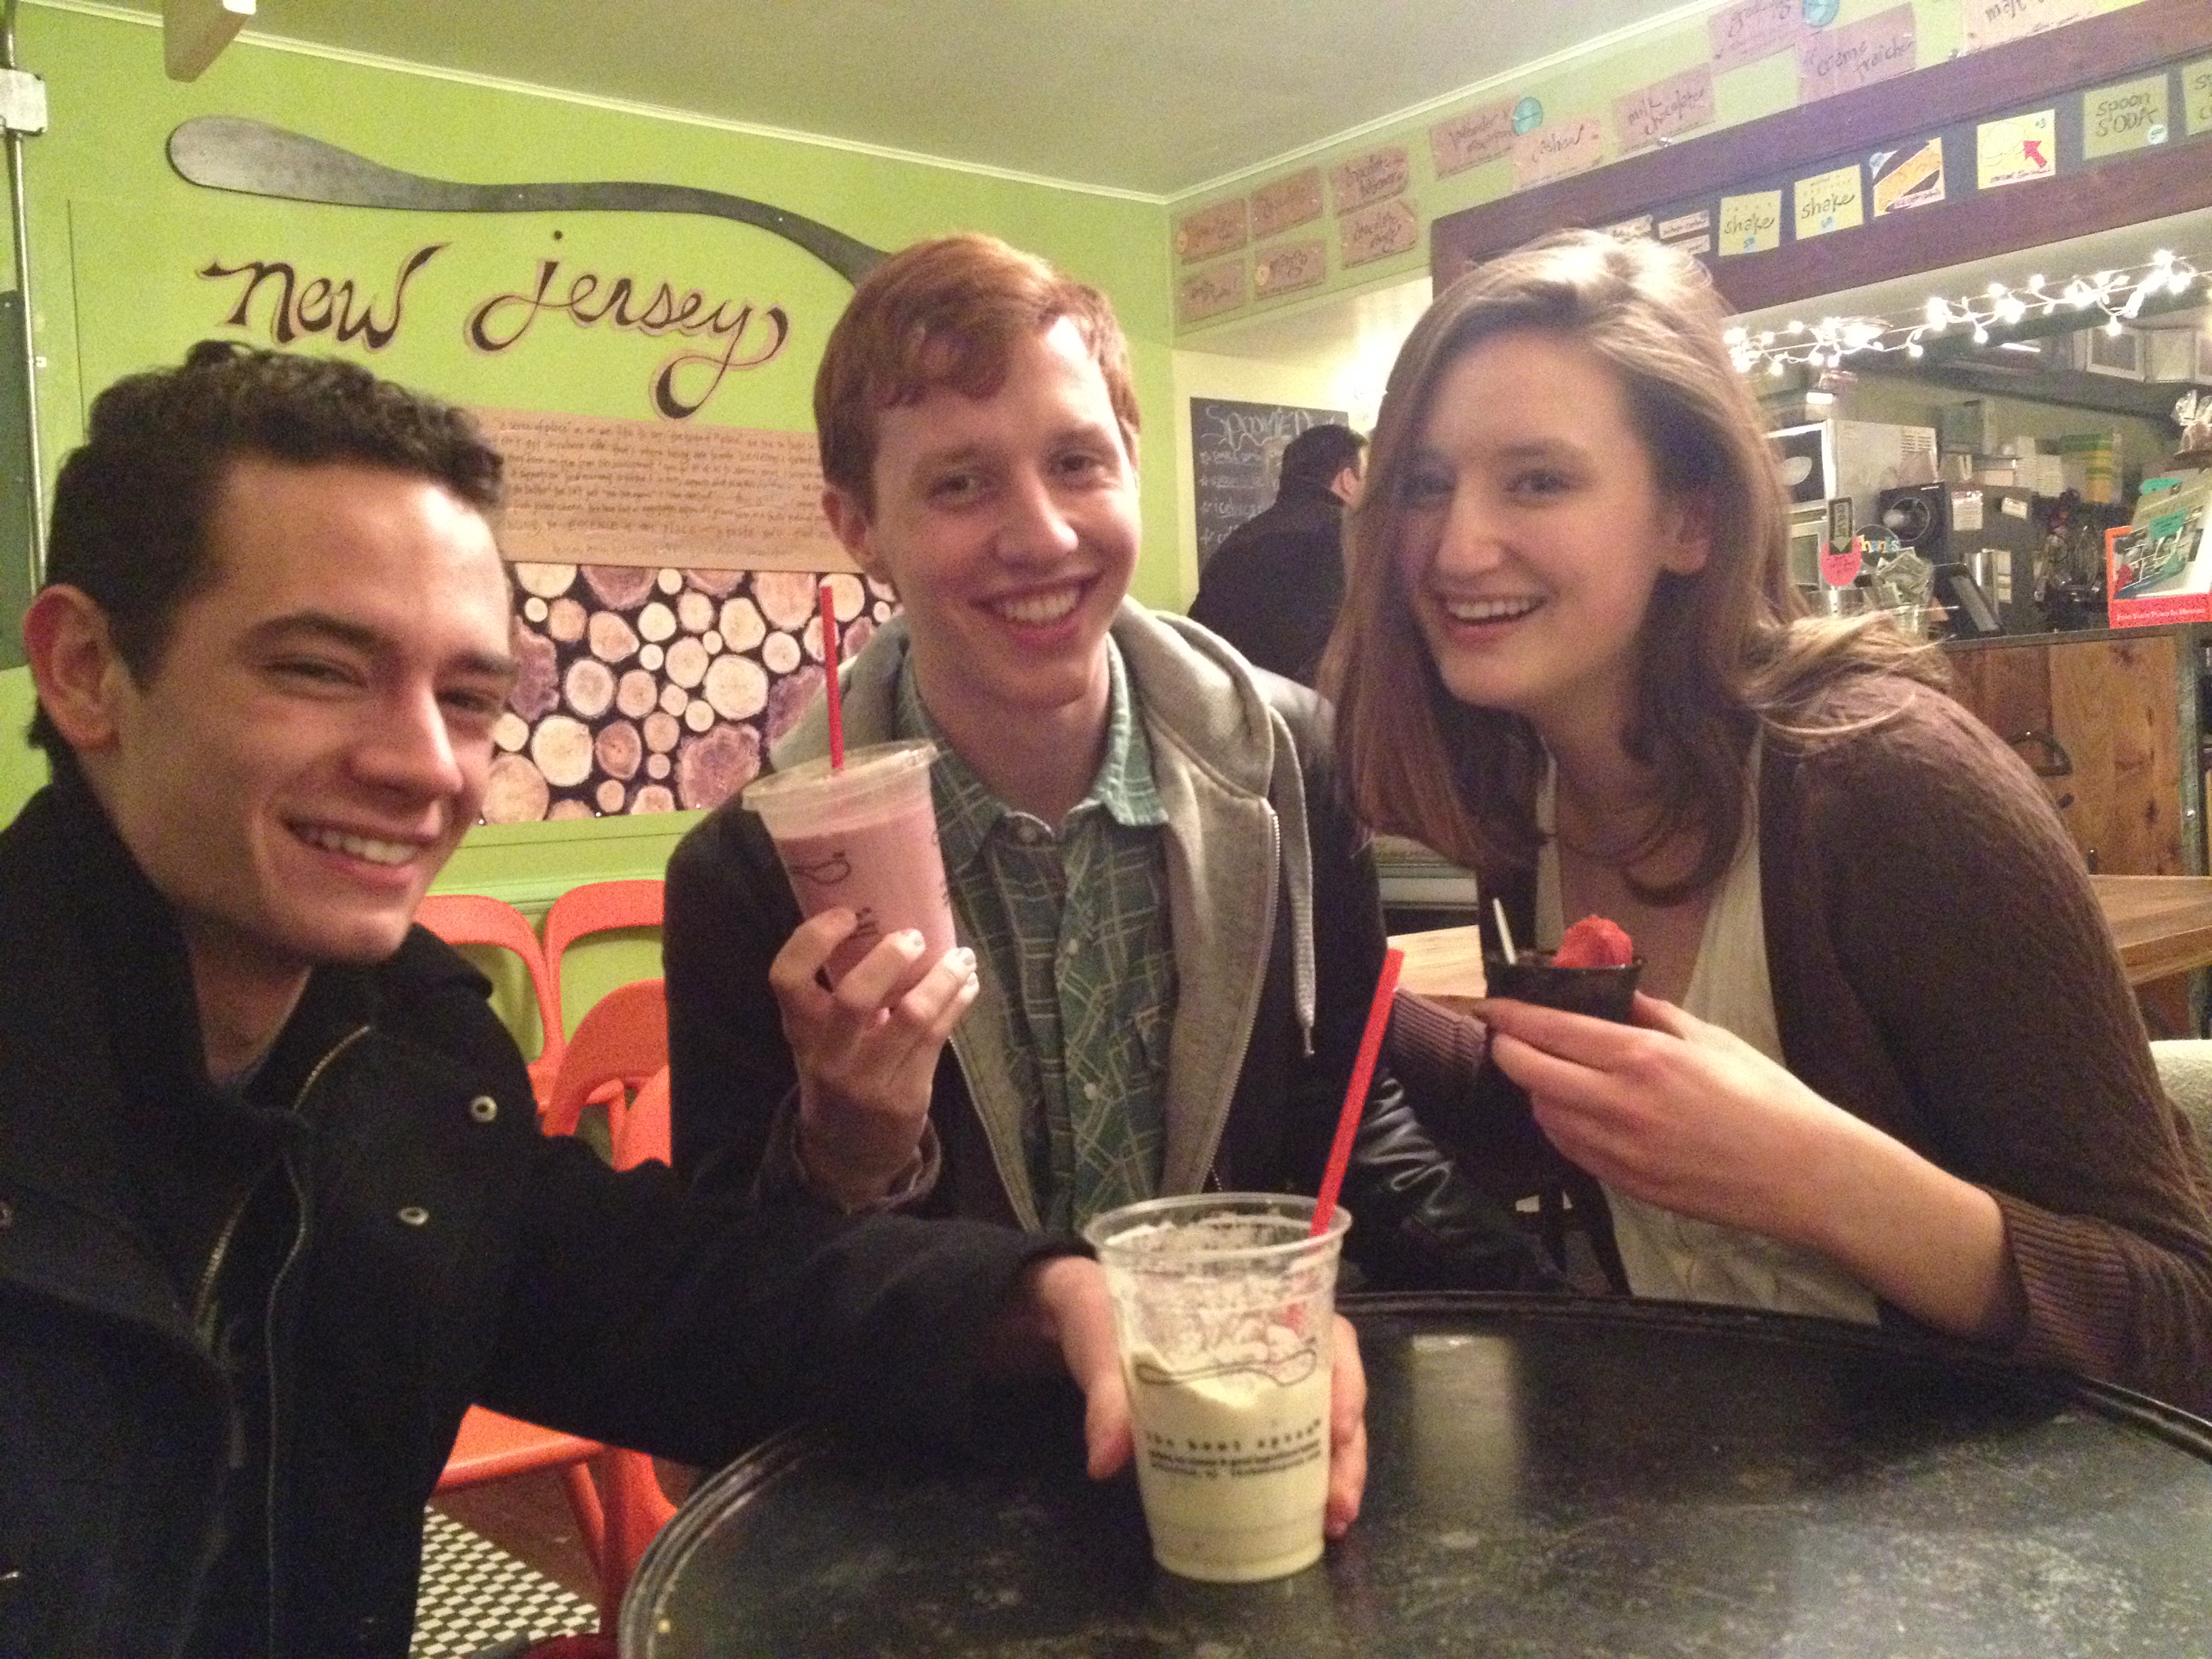 Three of my friends in Bent Spoon, showing off their milkshakes and ice cream.